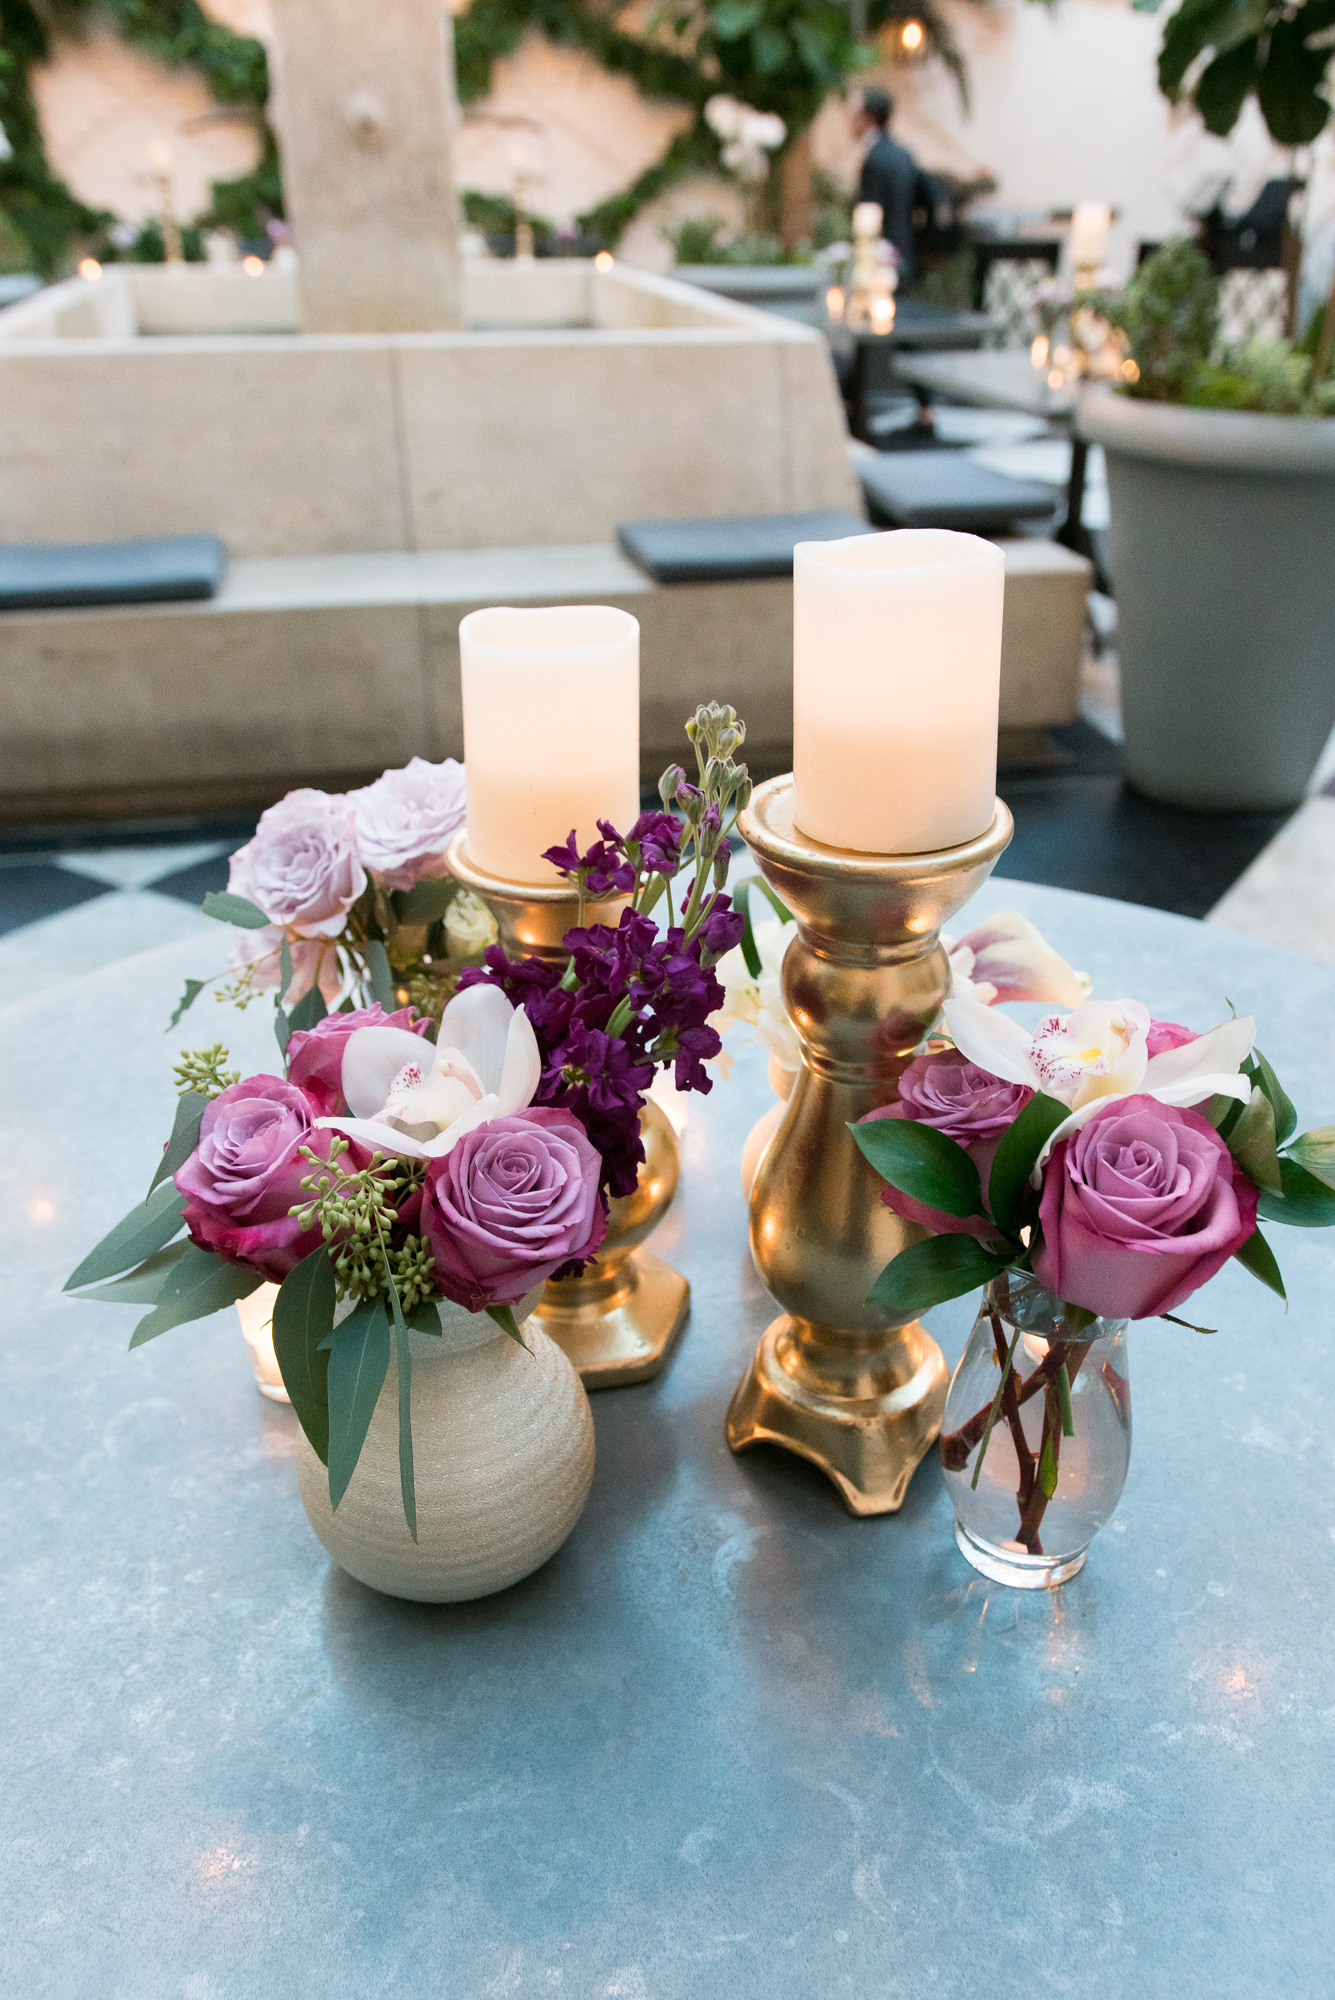 Oxford-Exchange-flowers-decoration-for-weddings